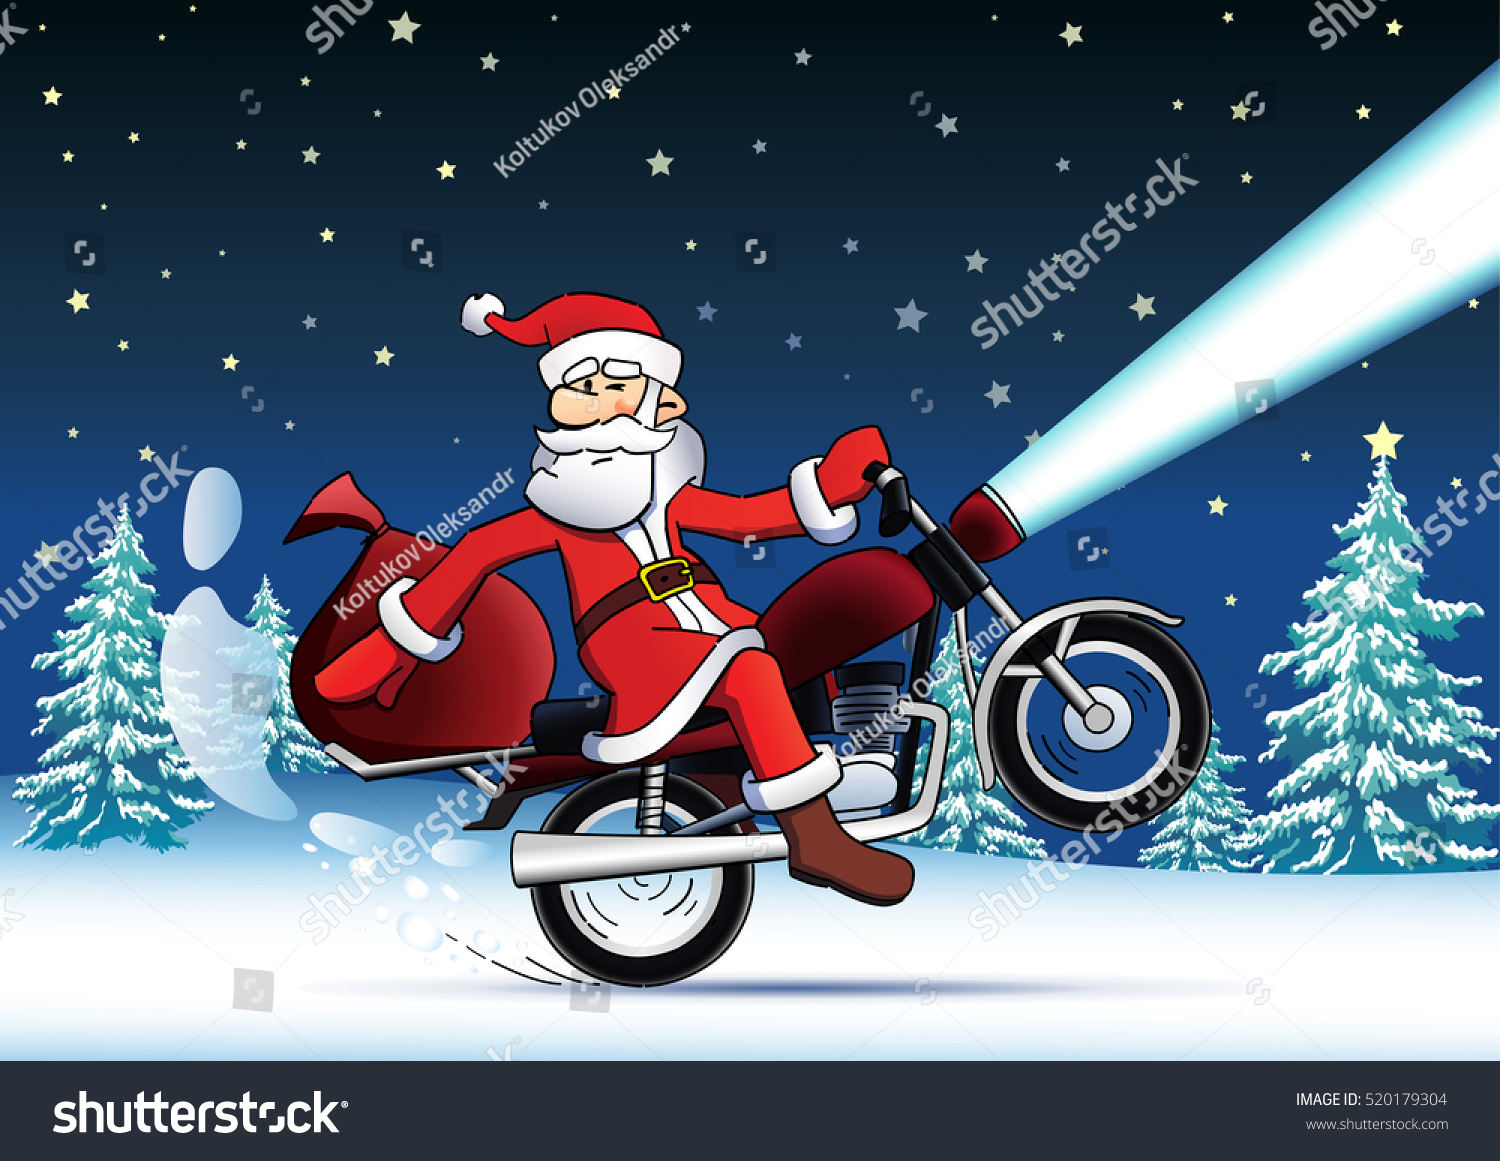 Funny Santa Claus Christmas Gifts On Stock Vector (Royalty Free ...